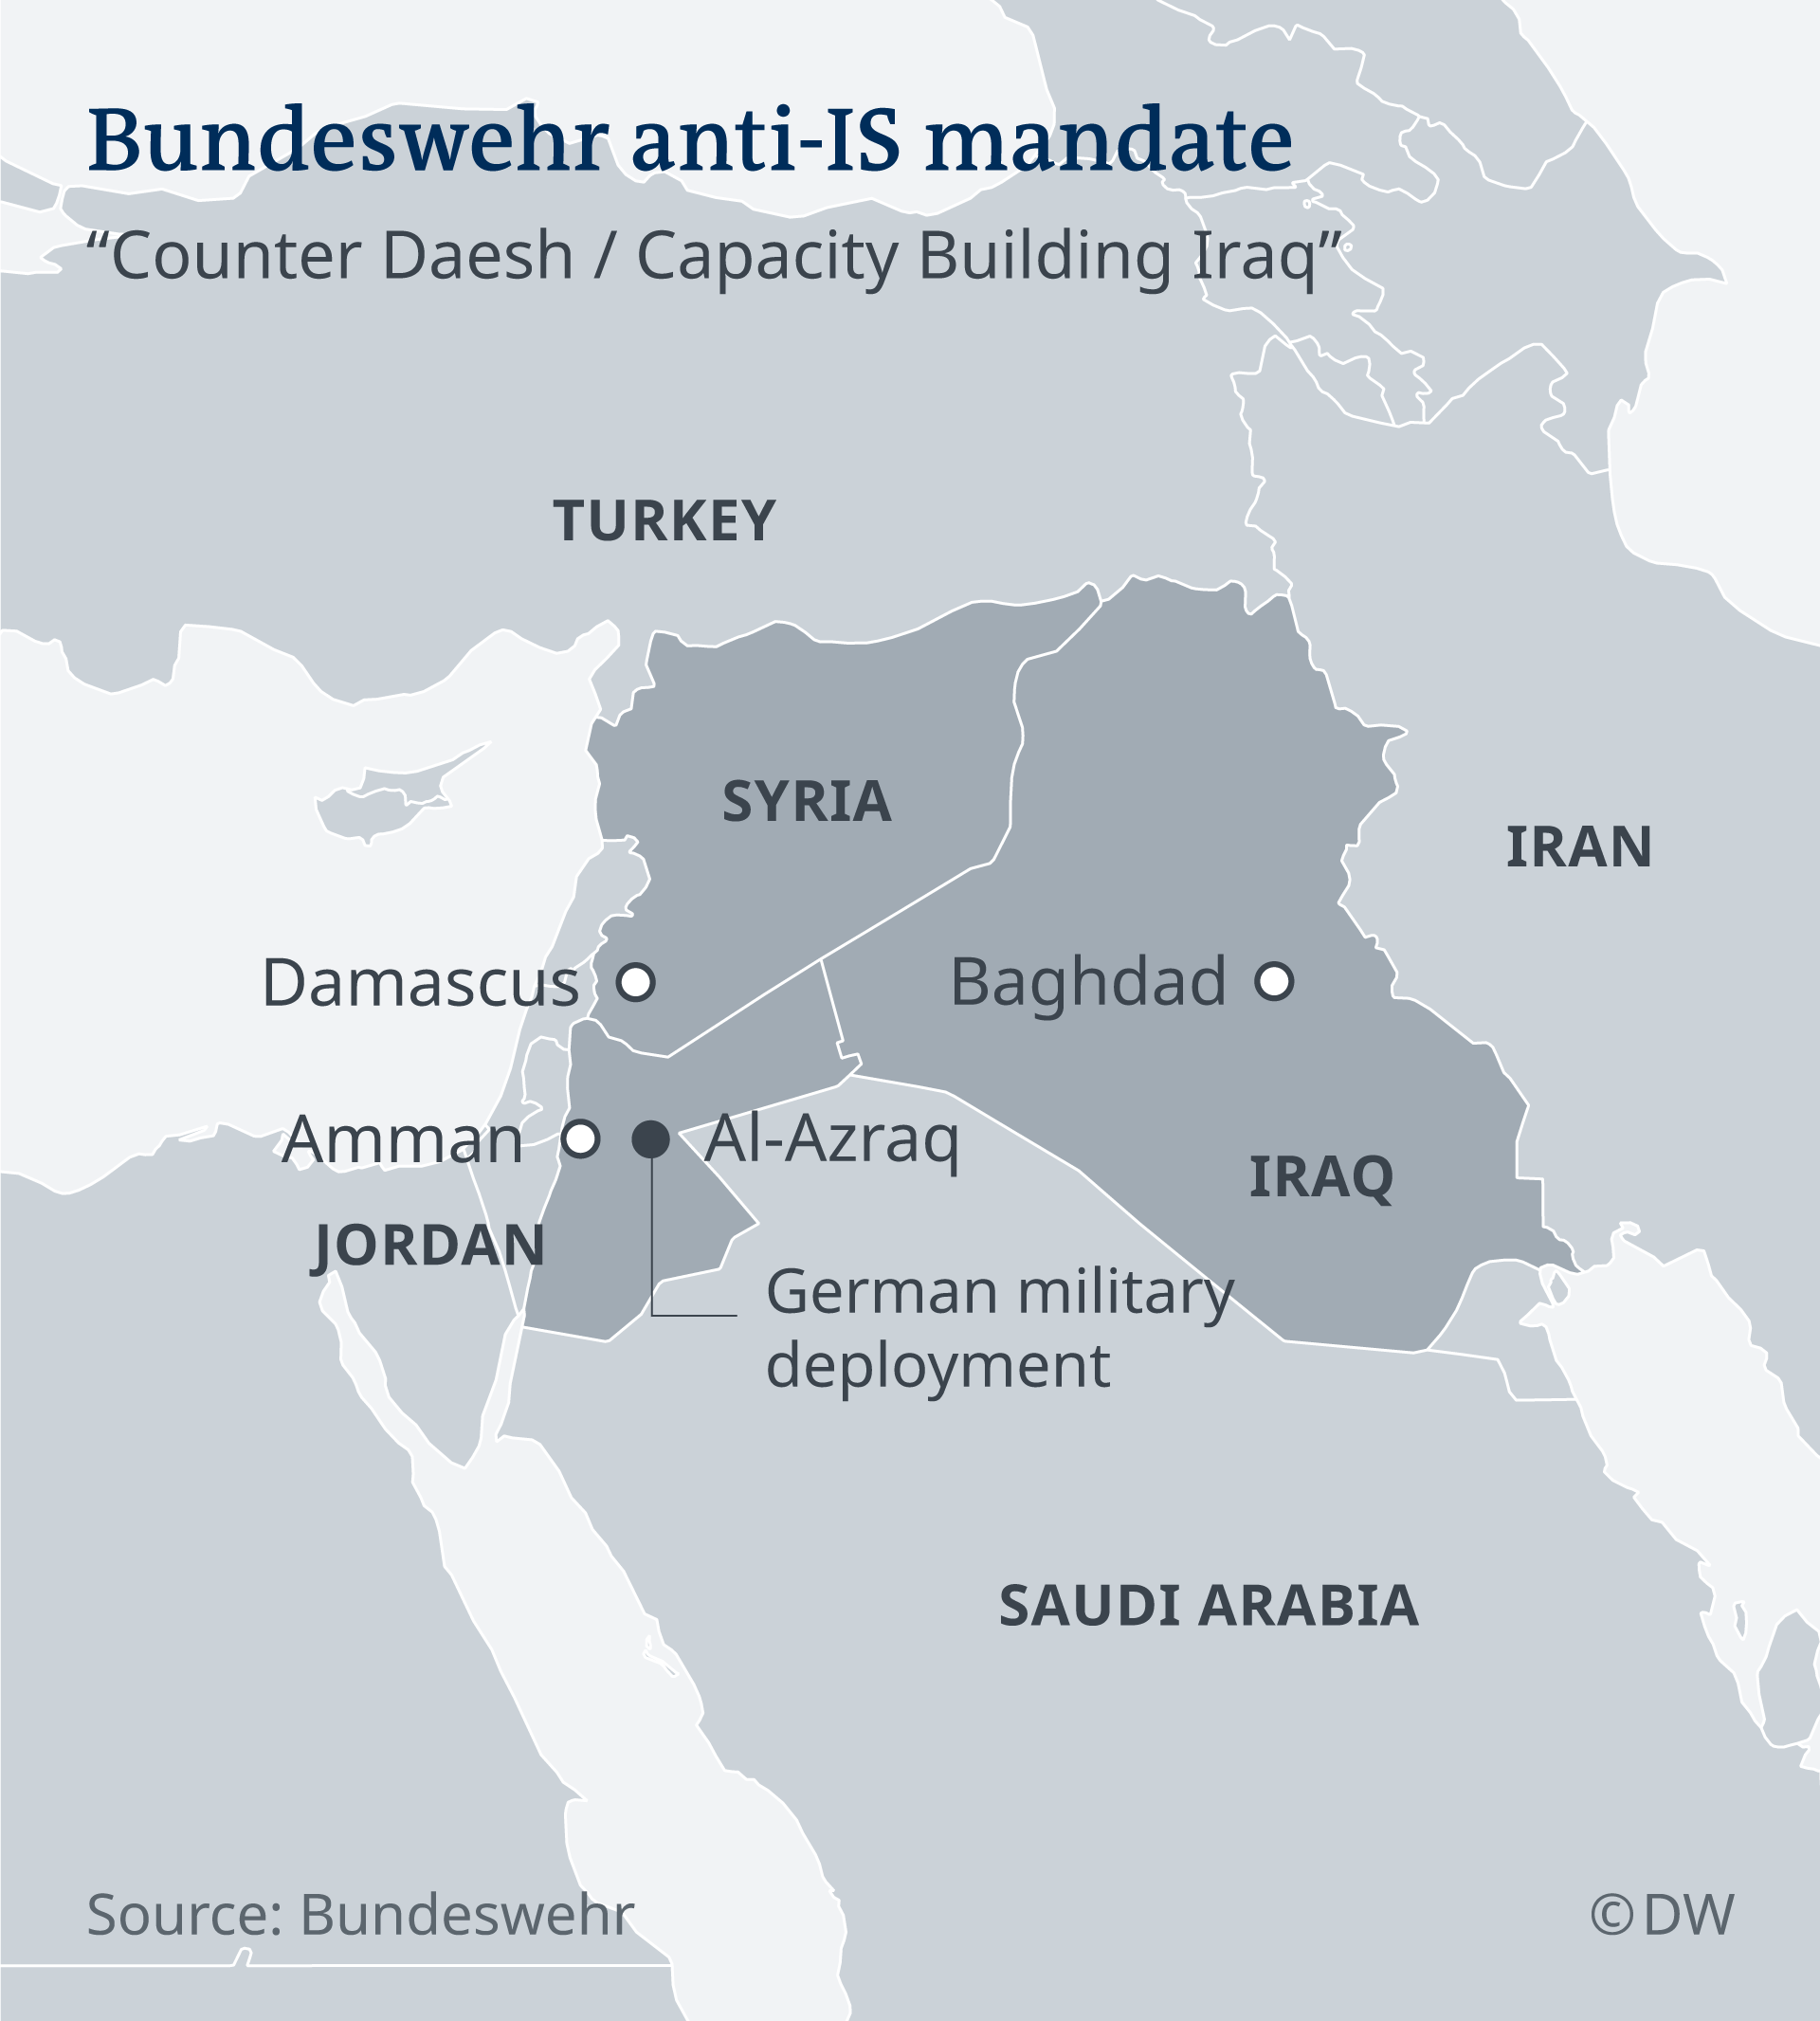 Bundeswehr deployment to Middle East